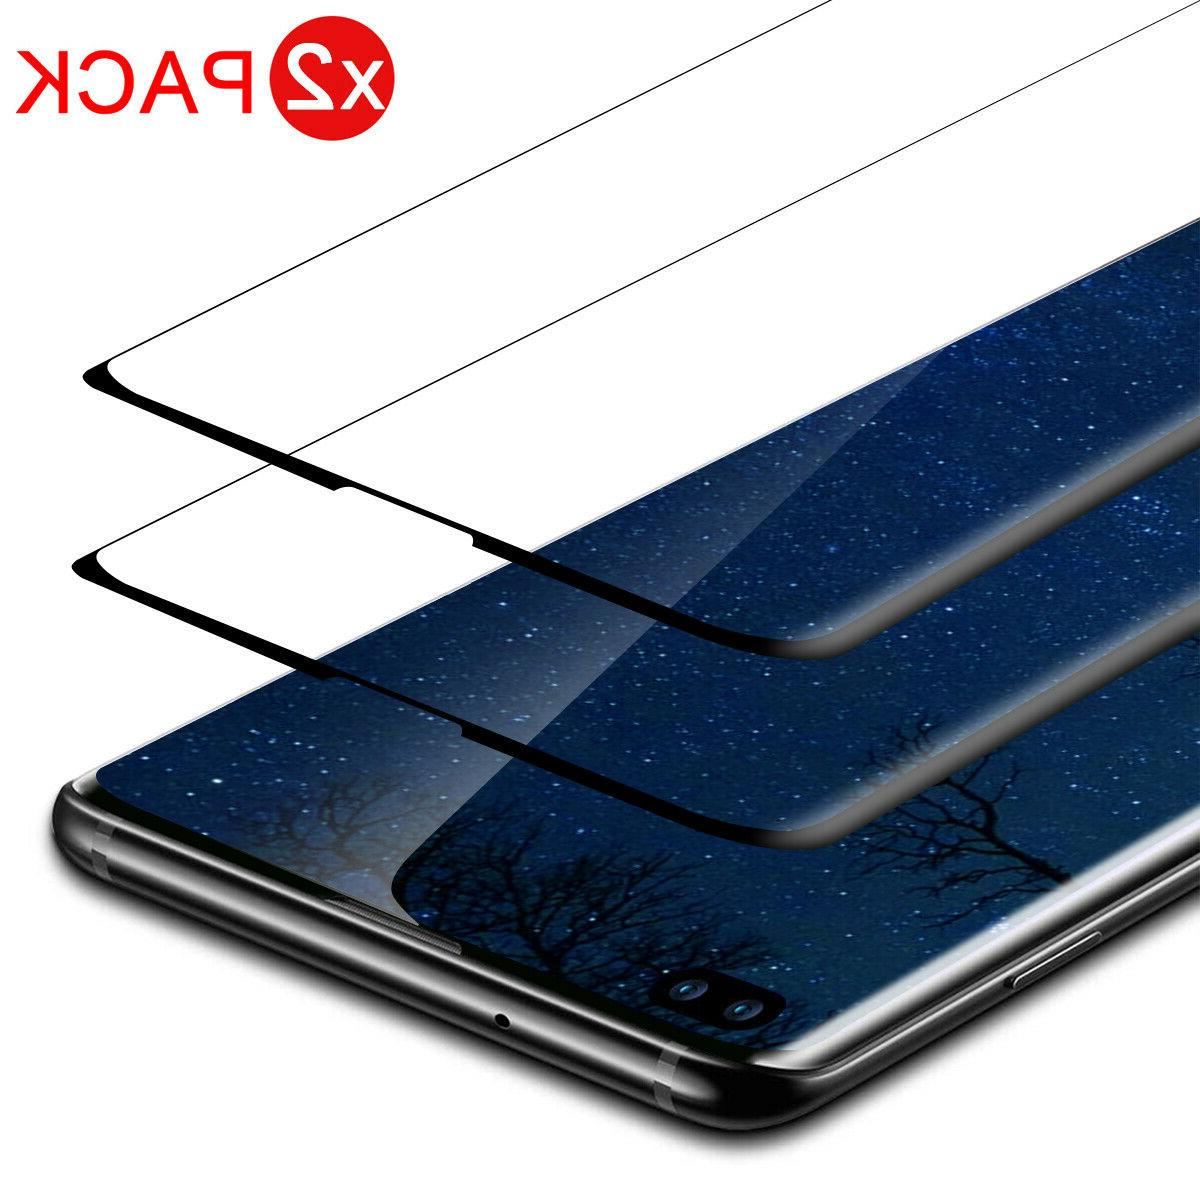 full coverage tempered glass screen protector forsamsung